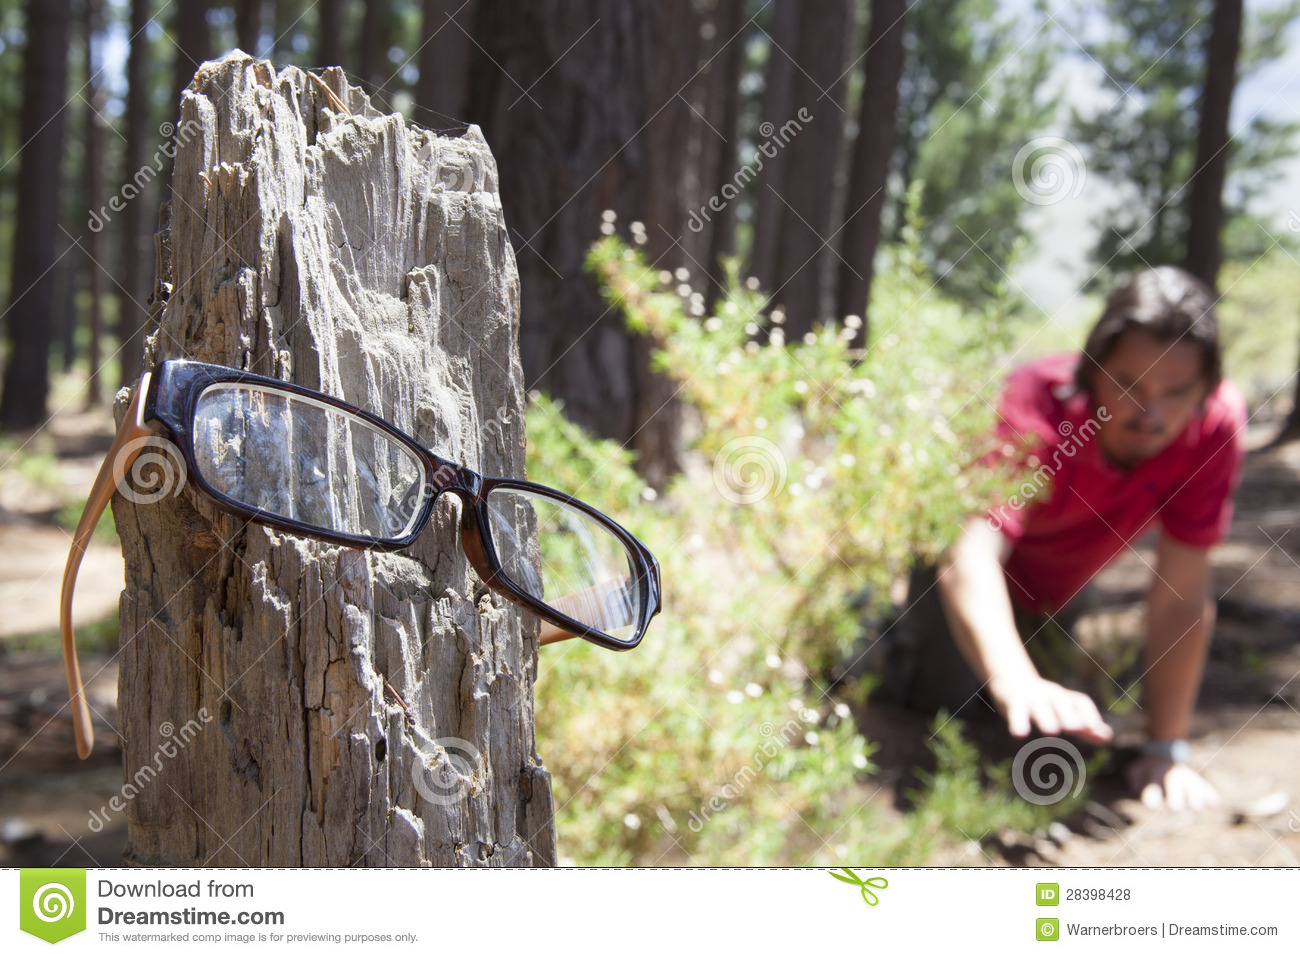 how to find my lost glasses